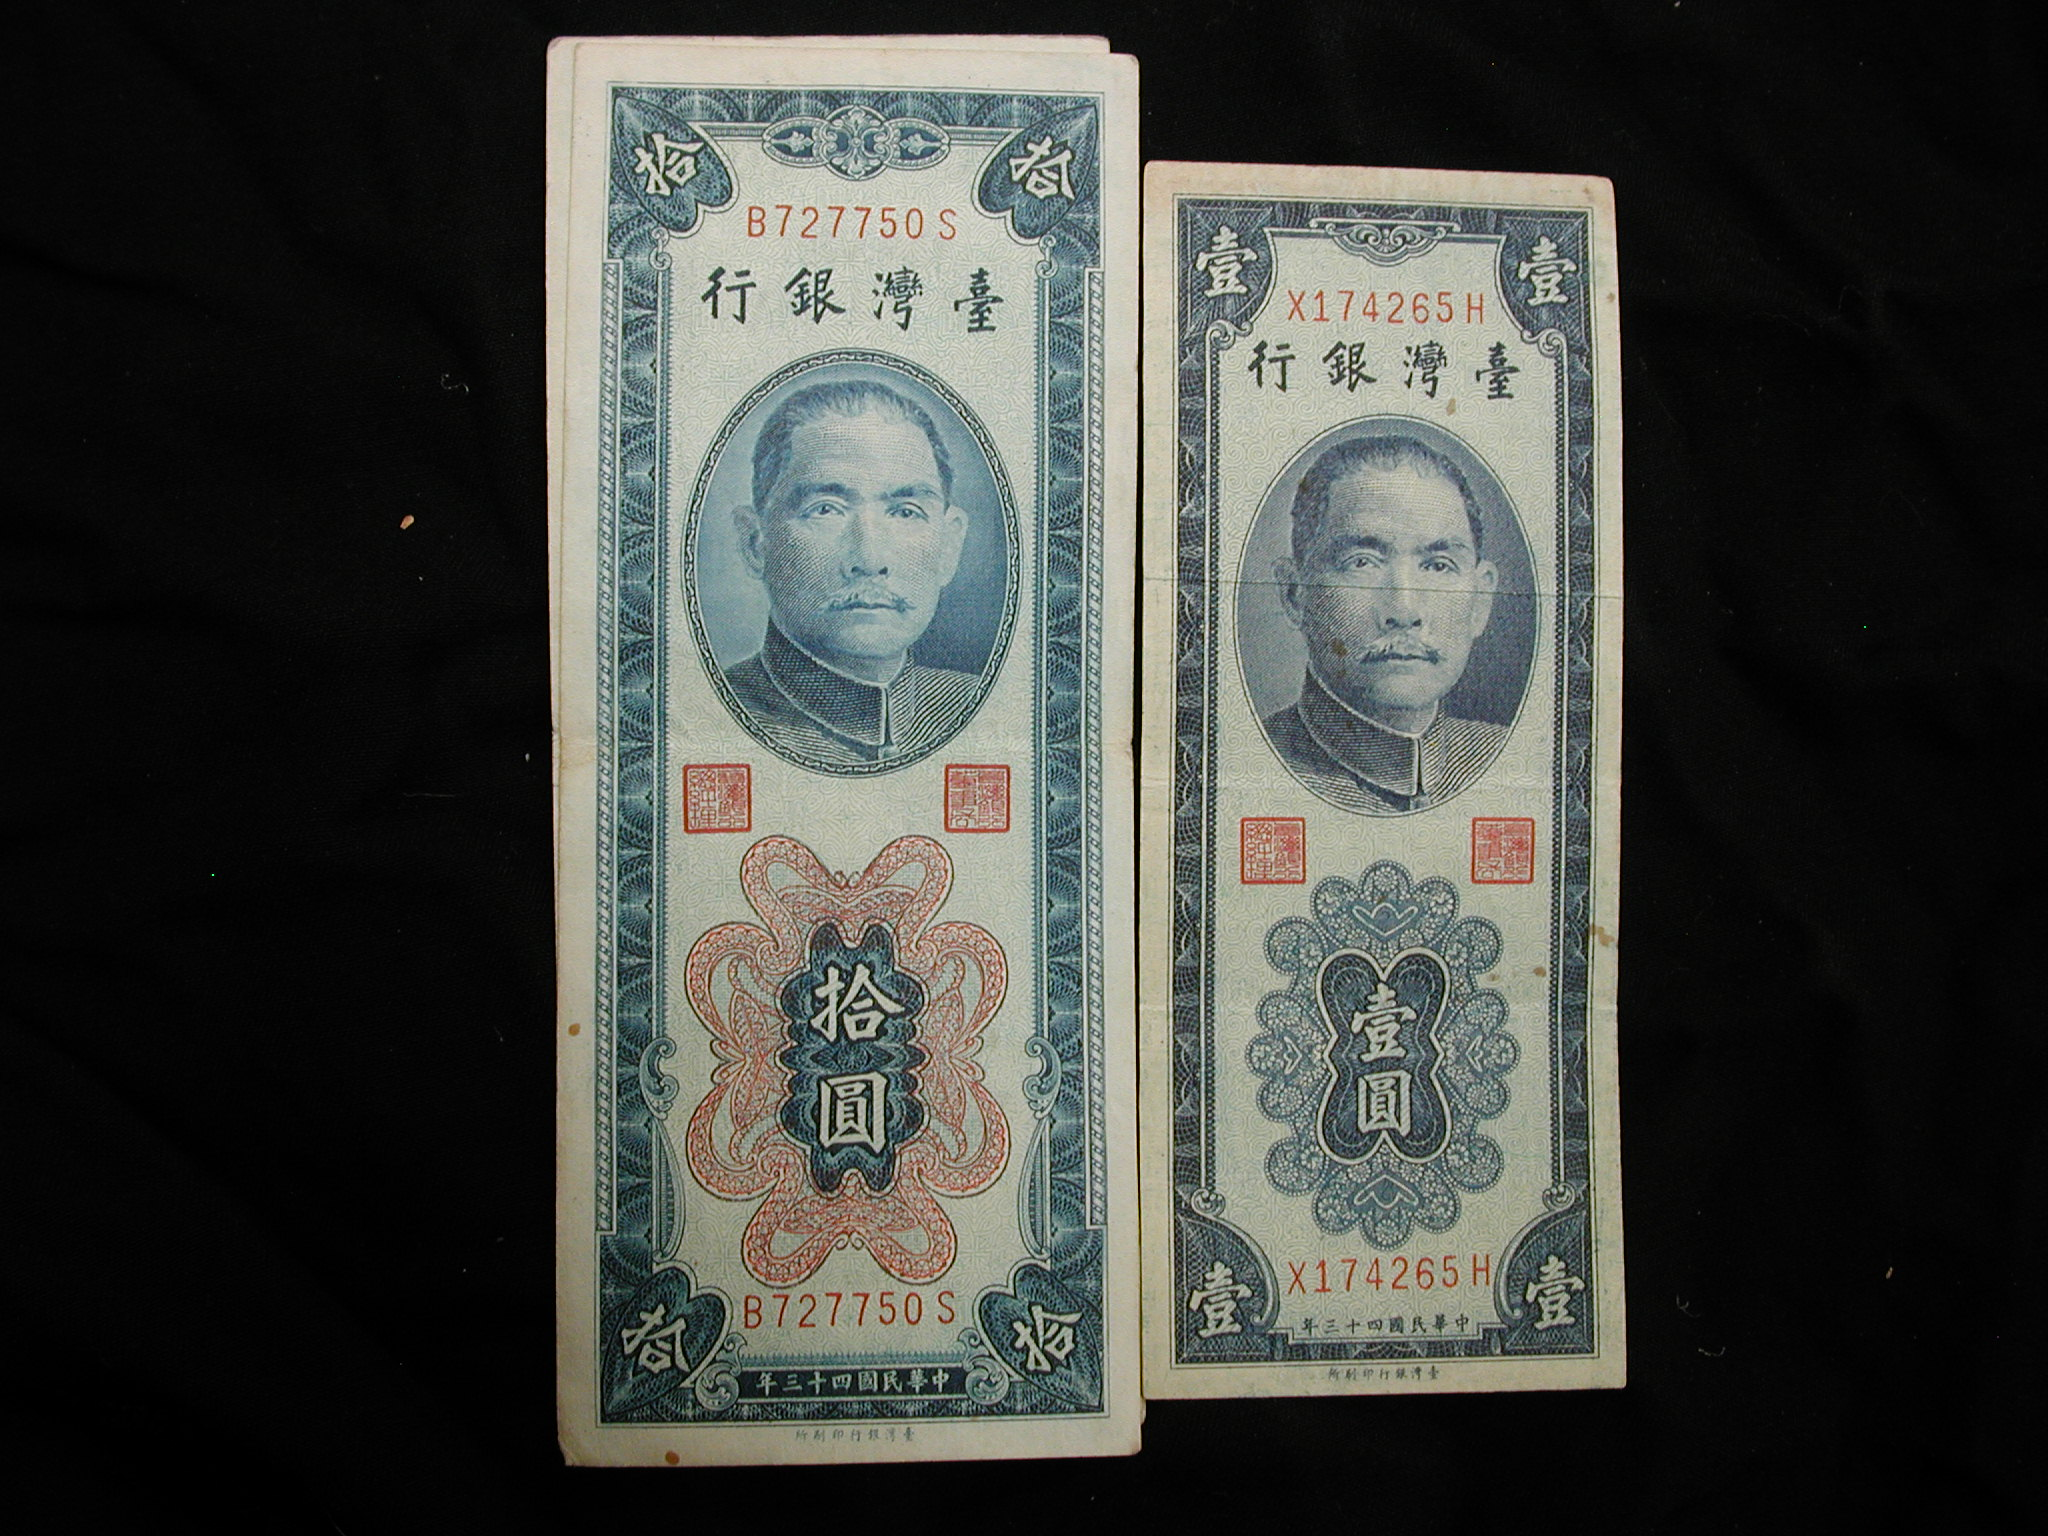 1954 Bank of Taiwan lot of two 10 Yuan and 1 One Yuan